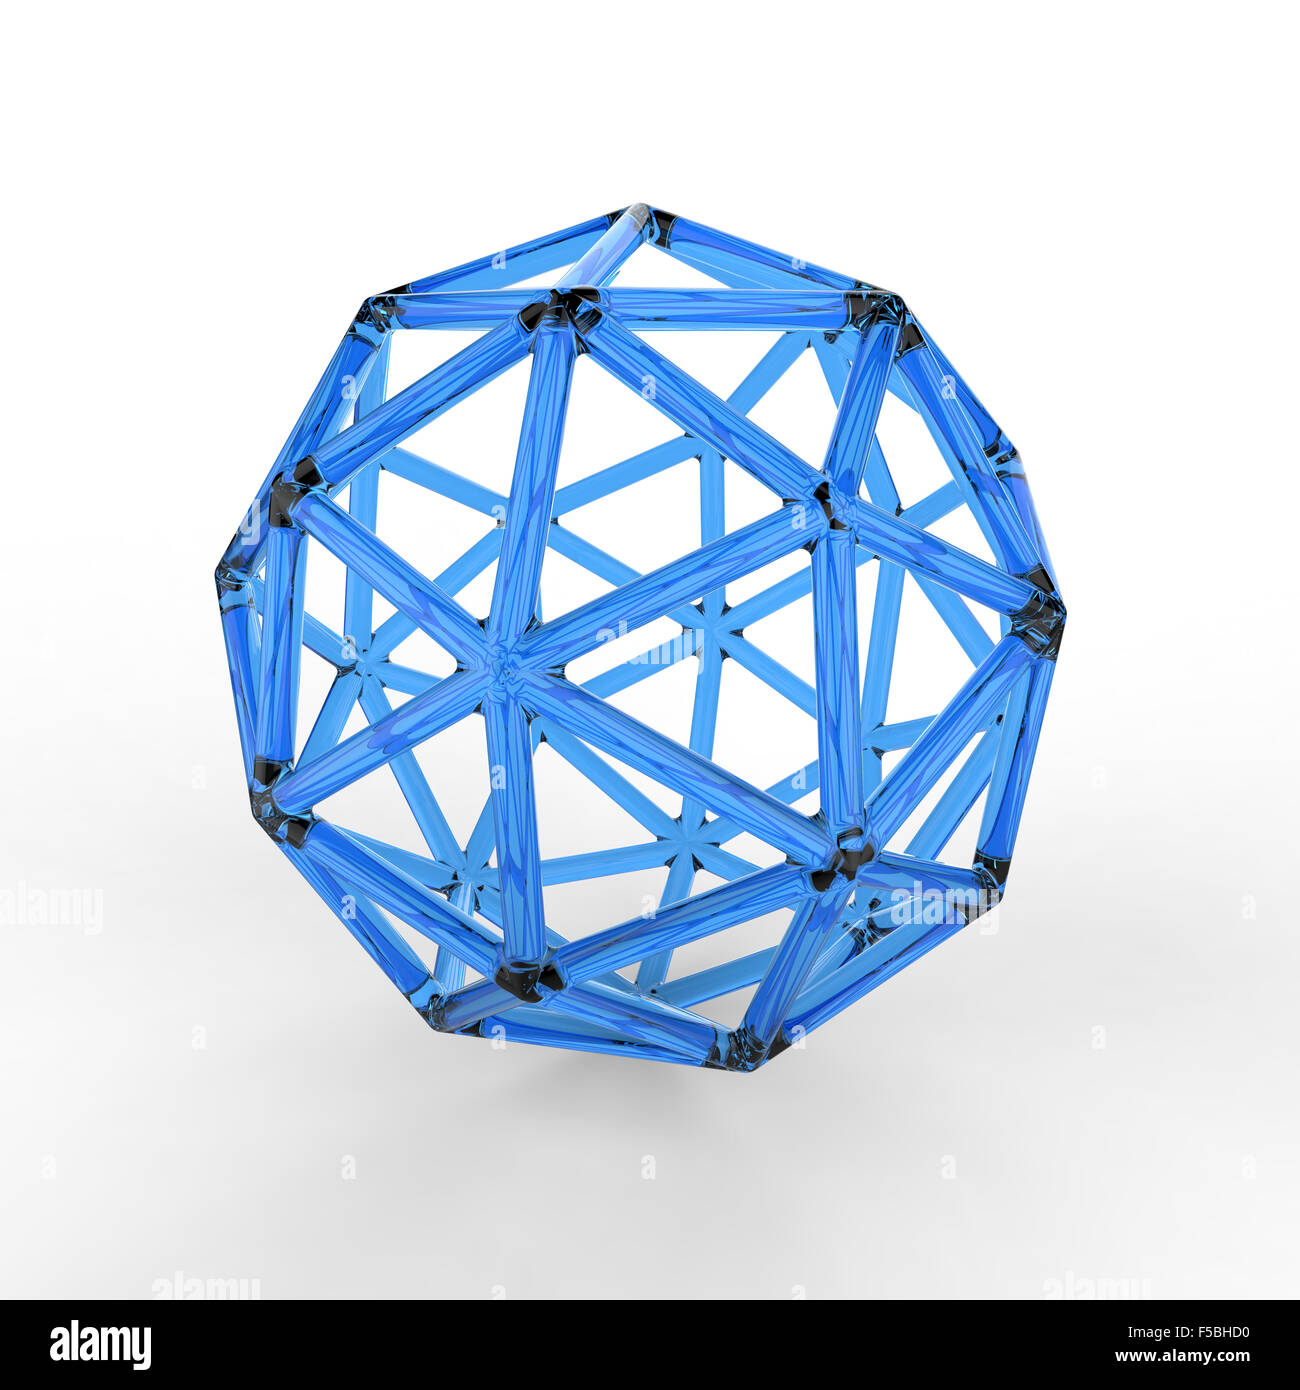 3d blue plastic glass pentakis dodecahedron with transparent frame on white background - Stock Image